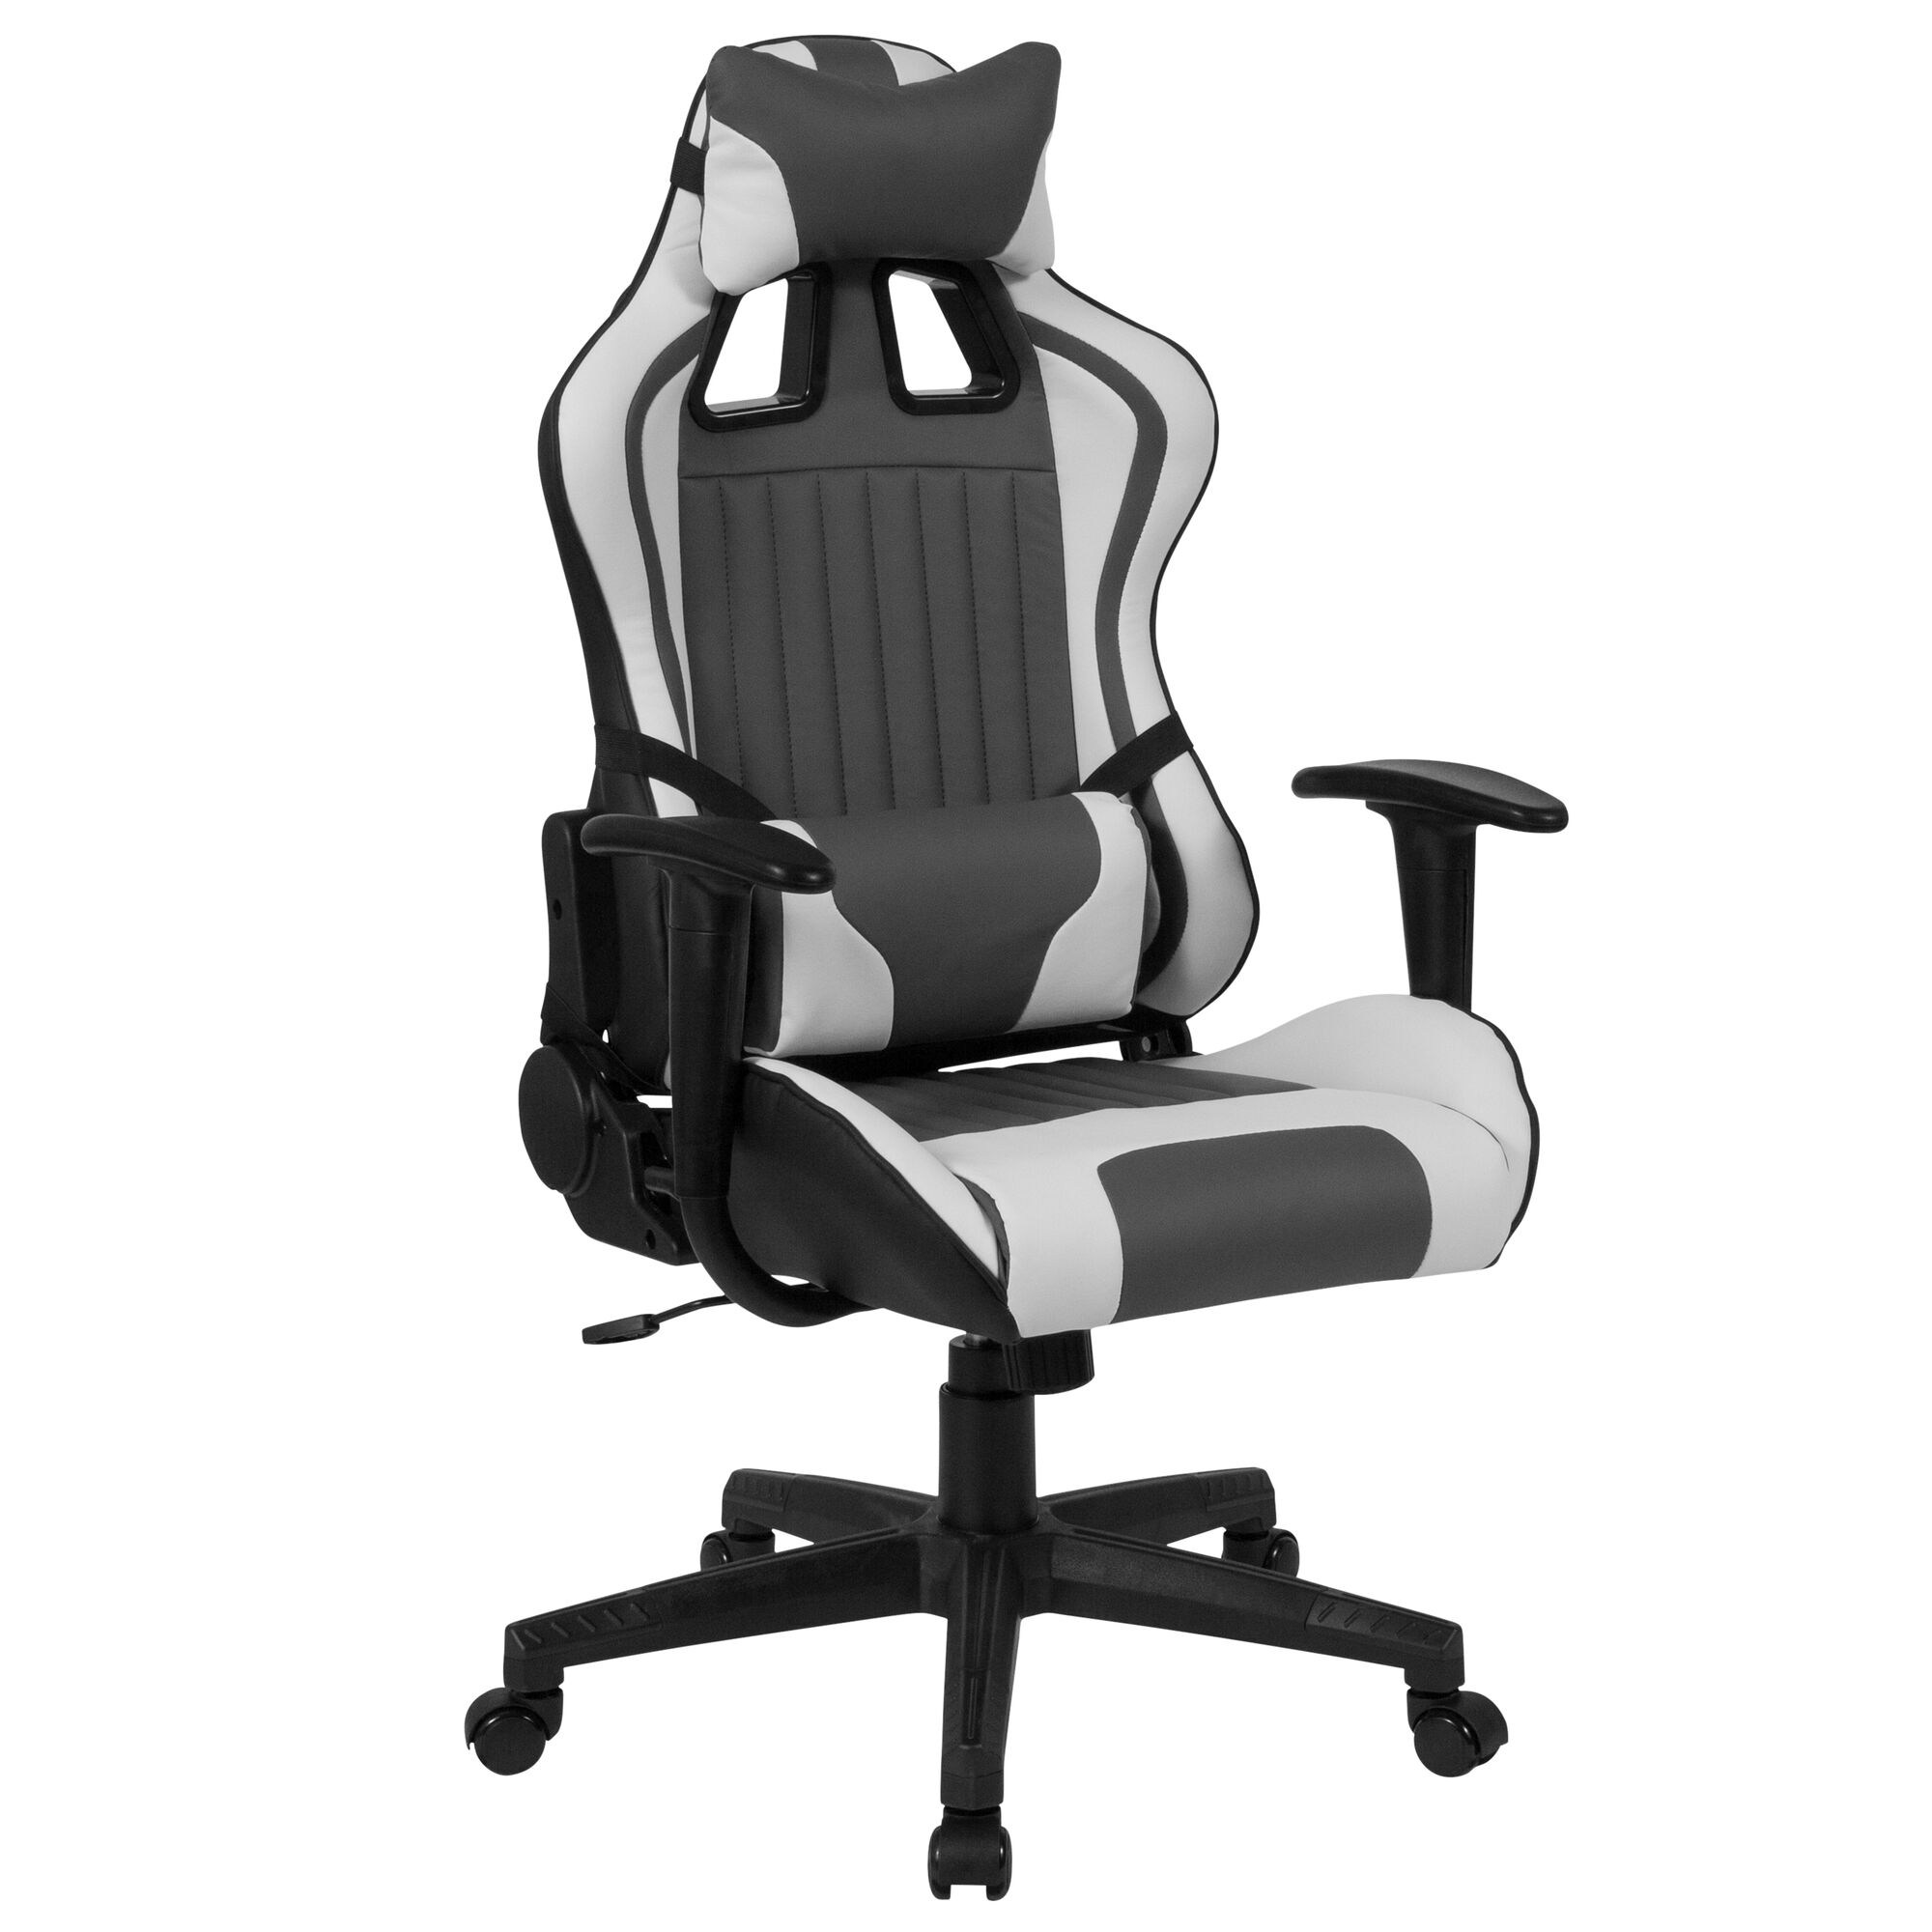 Prime X20 Reclining Gaming Chair Racing Office Ergonomic Pc Adjustable Swivel Chair With Adjustable Lumbar Support Gray White Leathersoft Uwap Interior Chair Design Uwaporg